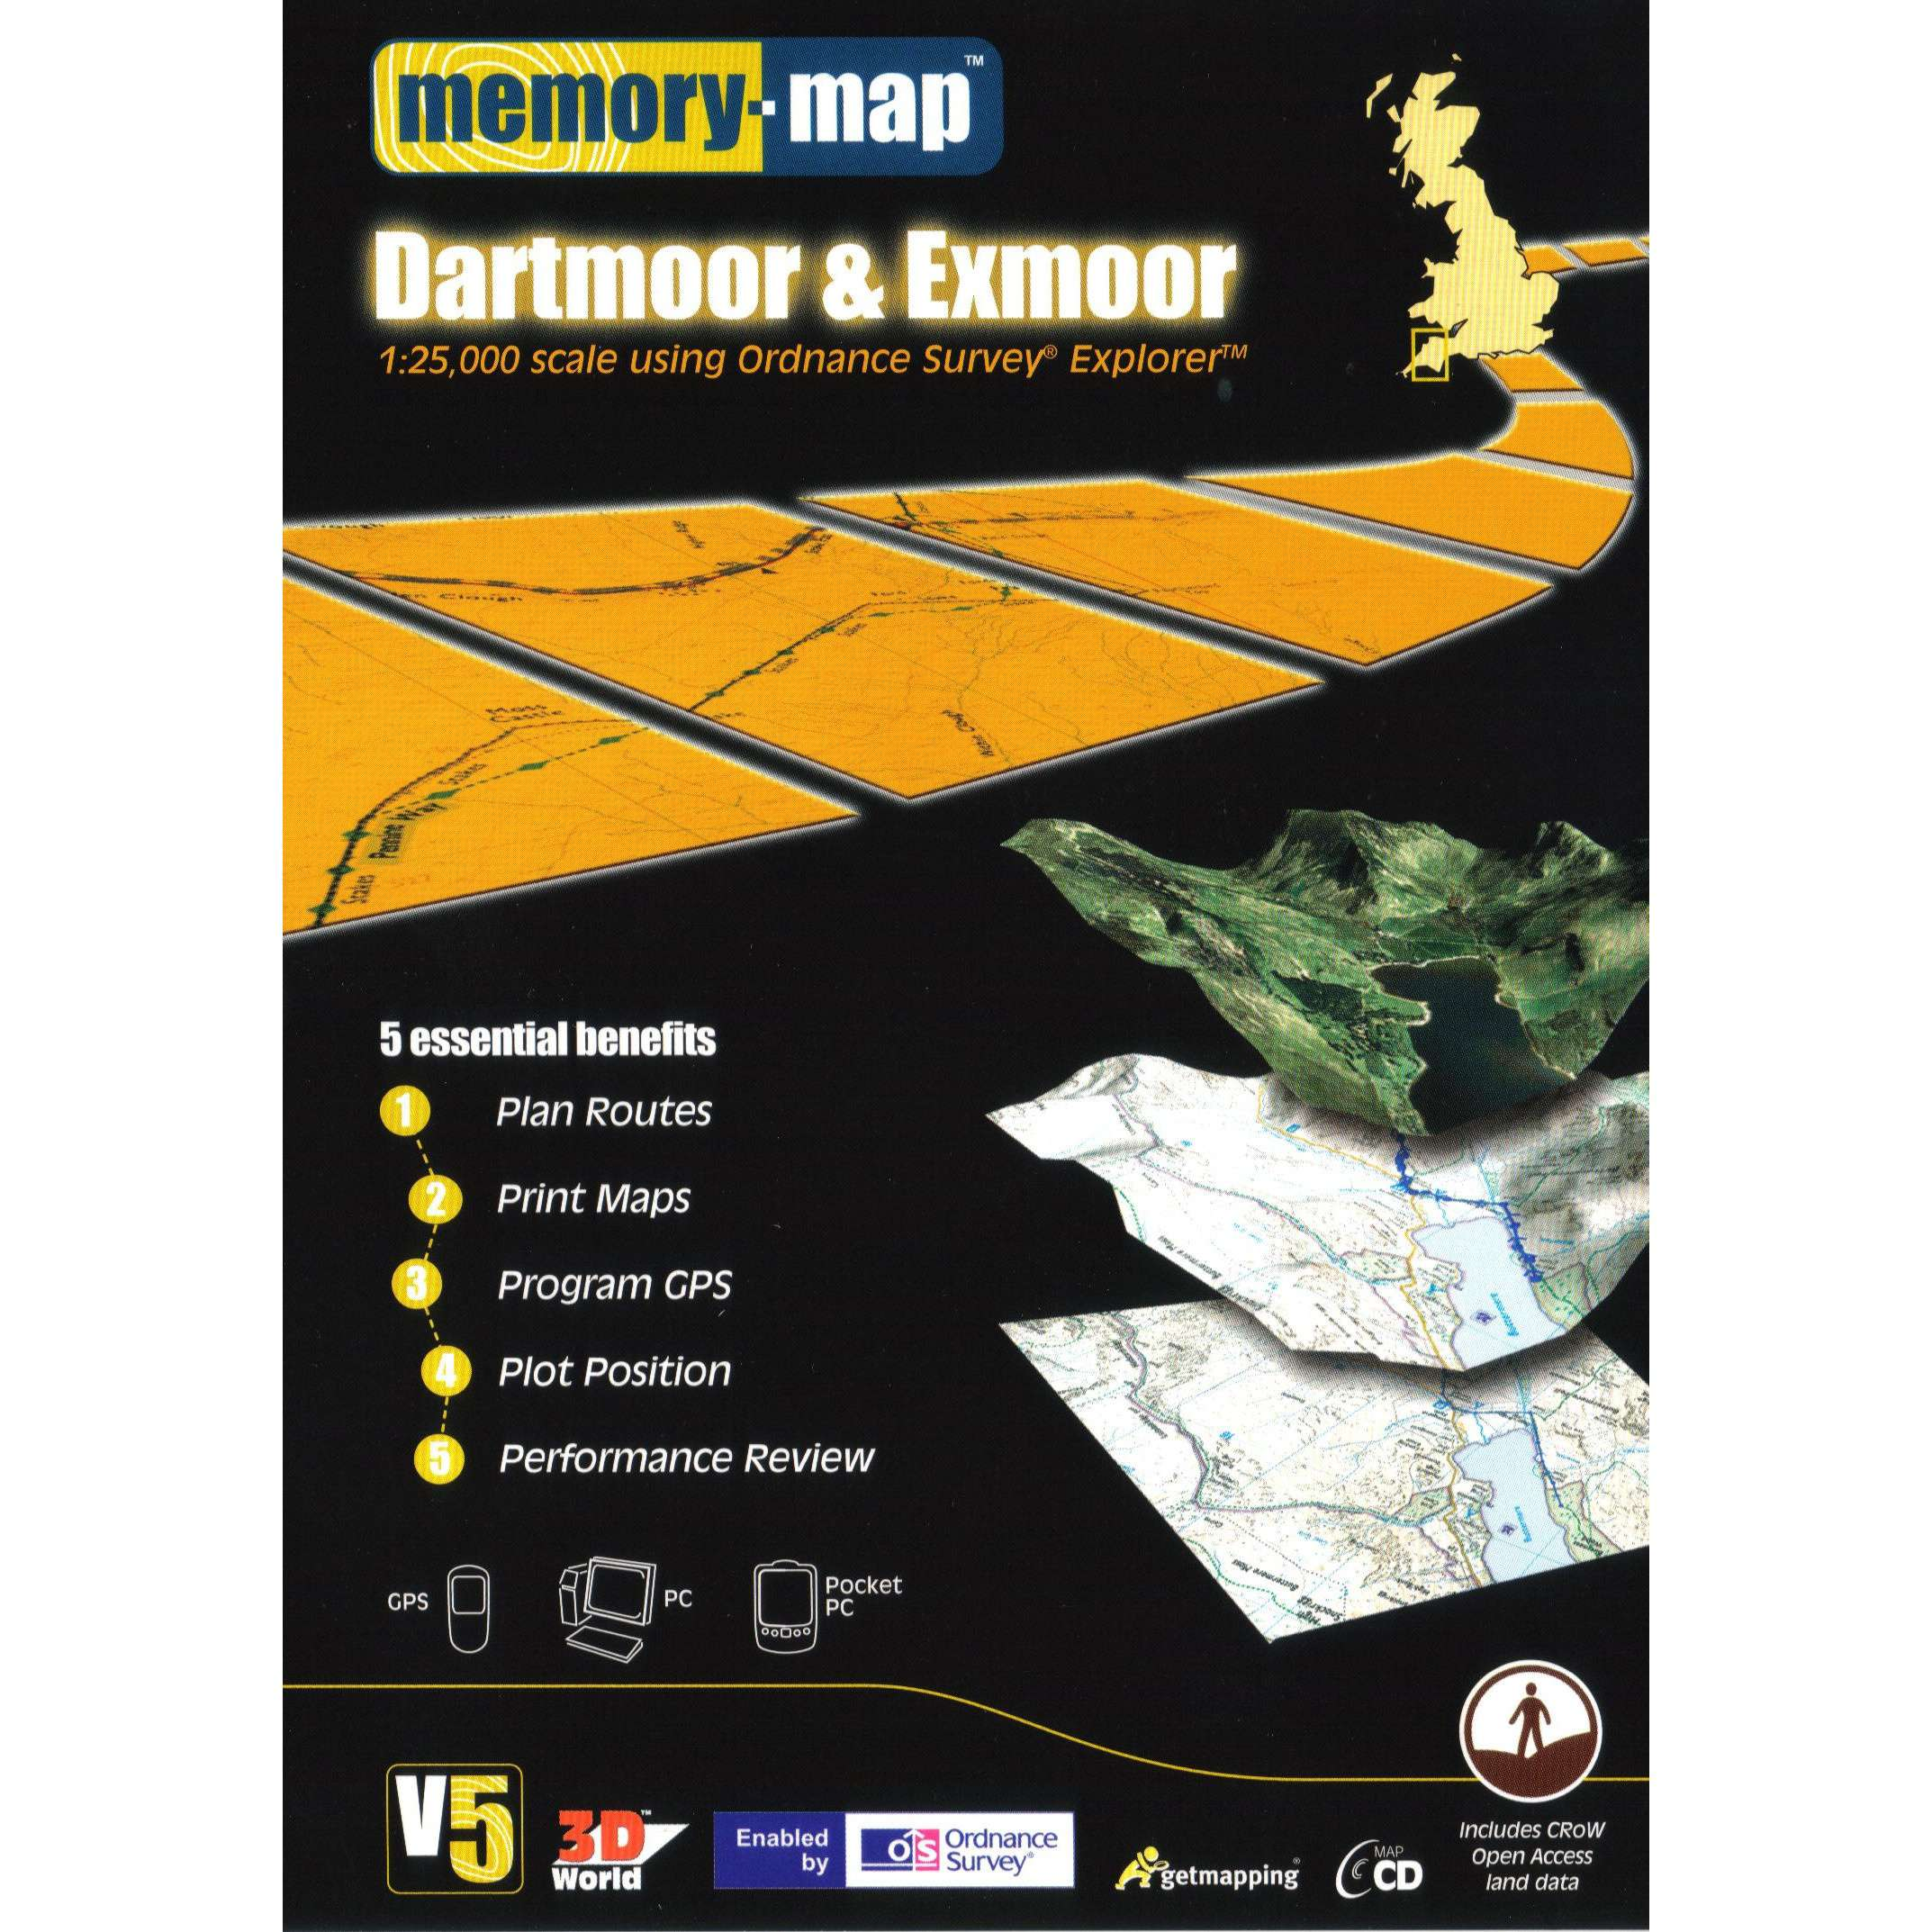 MEMORY MAP OS Explorer Dartmoor & Exmoor